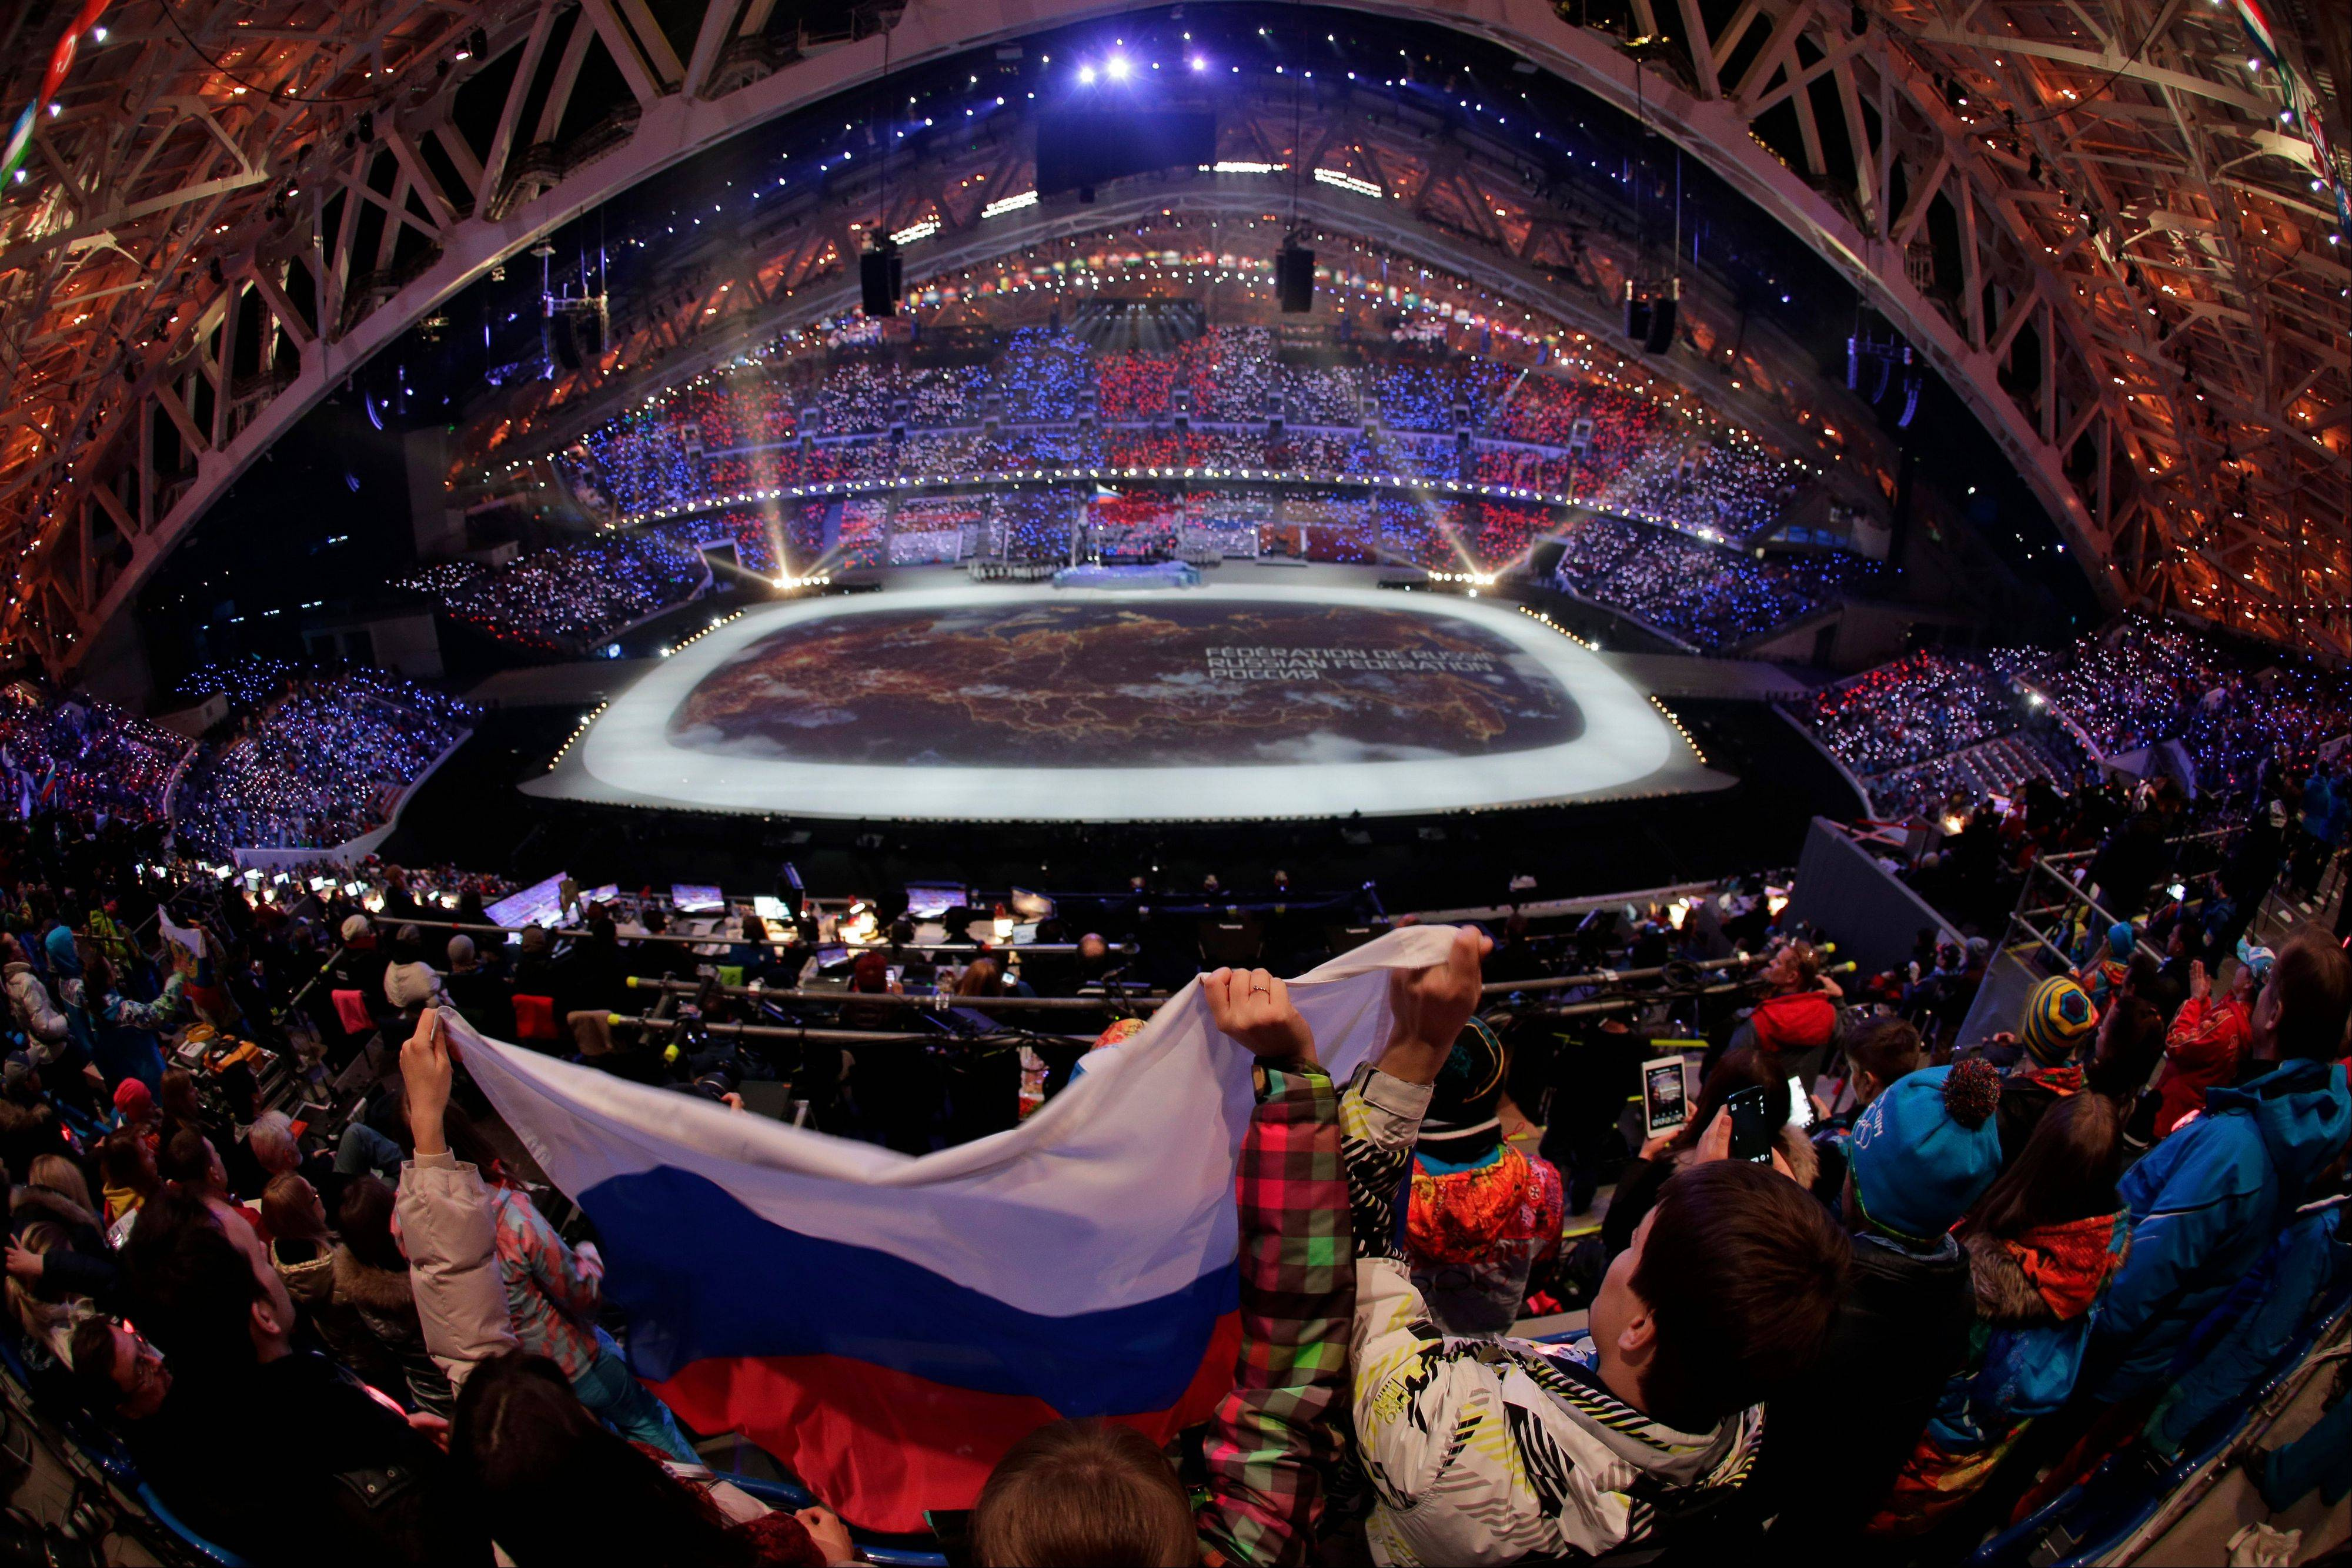 Spectators wave the Russian flag during the opening ceremony.